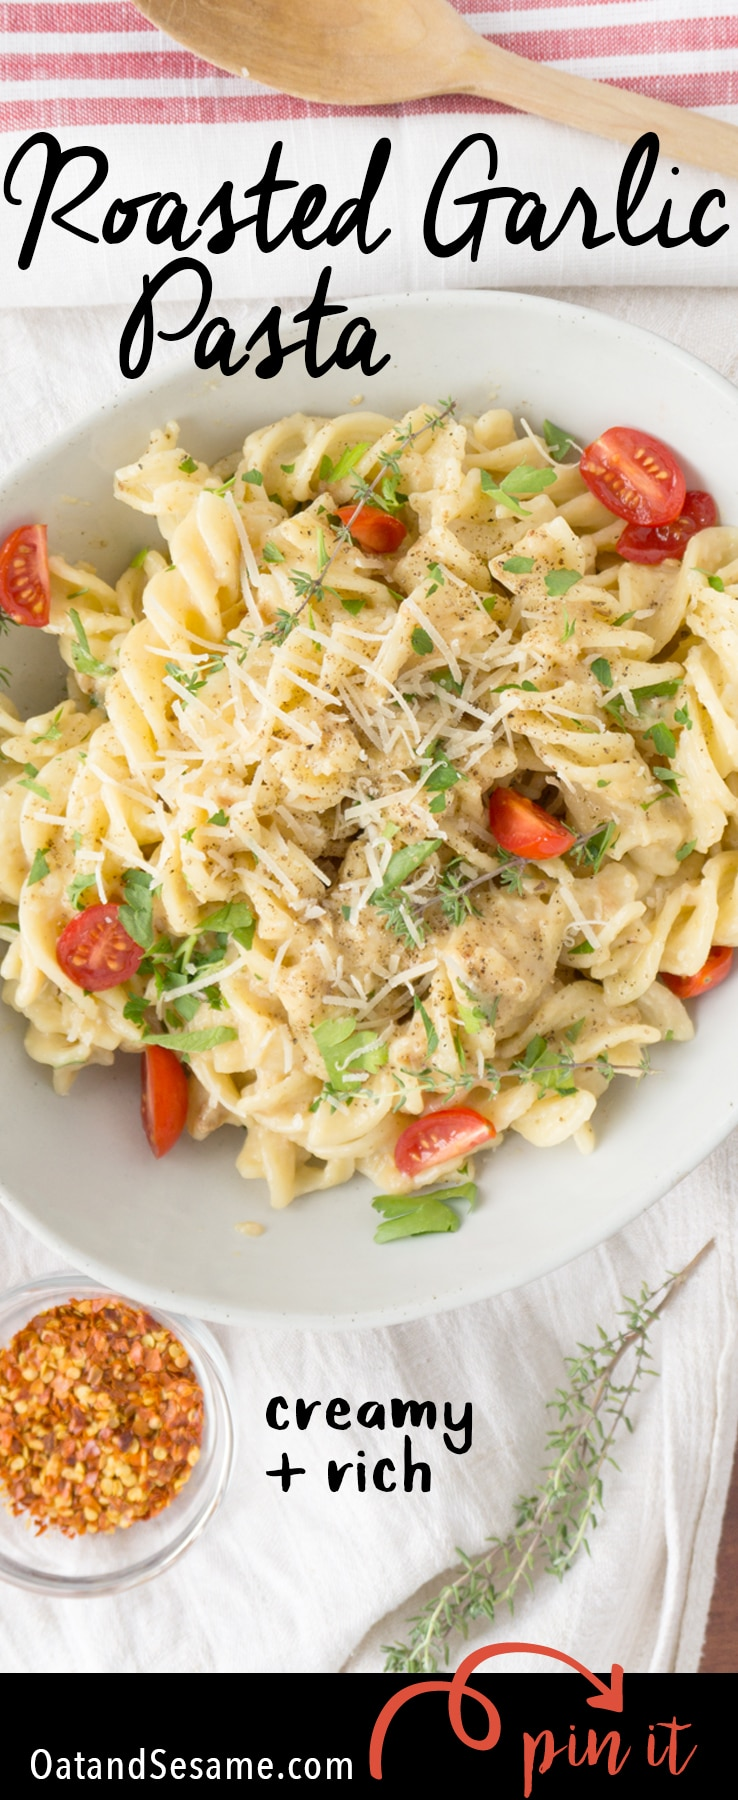 Creamy Roasted Garlic Pasta Sauce - in Under 30 Min you can enjoy this rich garlicky pasta tossed with tomatoes and fresh parsley to balance it out | GARLIC | PASTA | recipe at OatandSesame.com